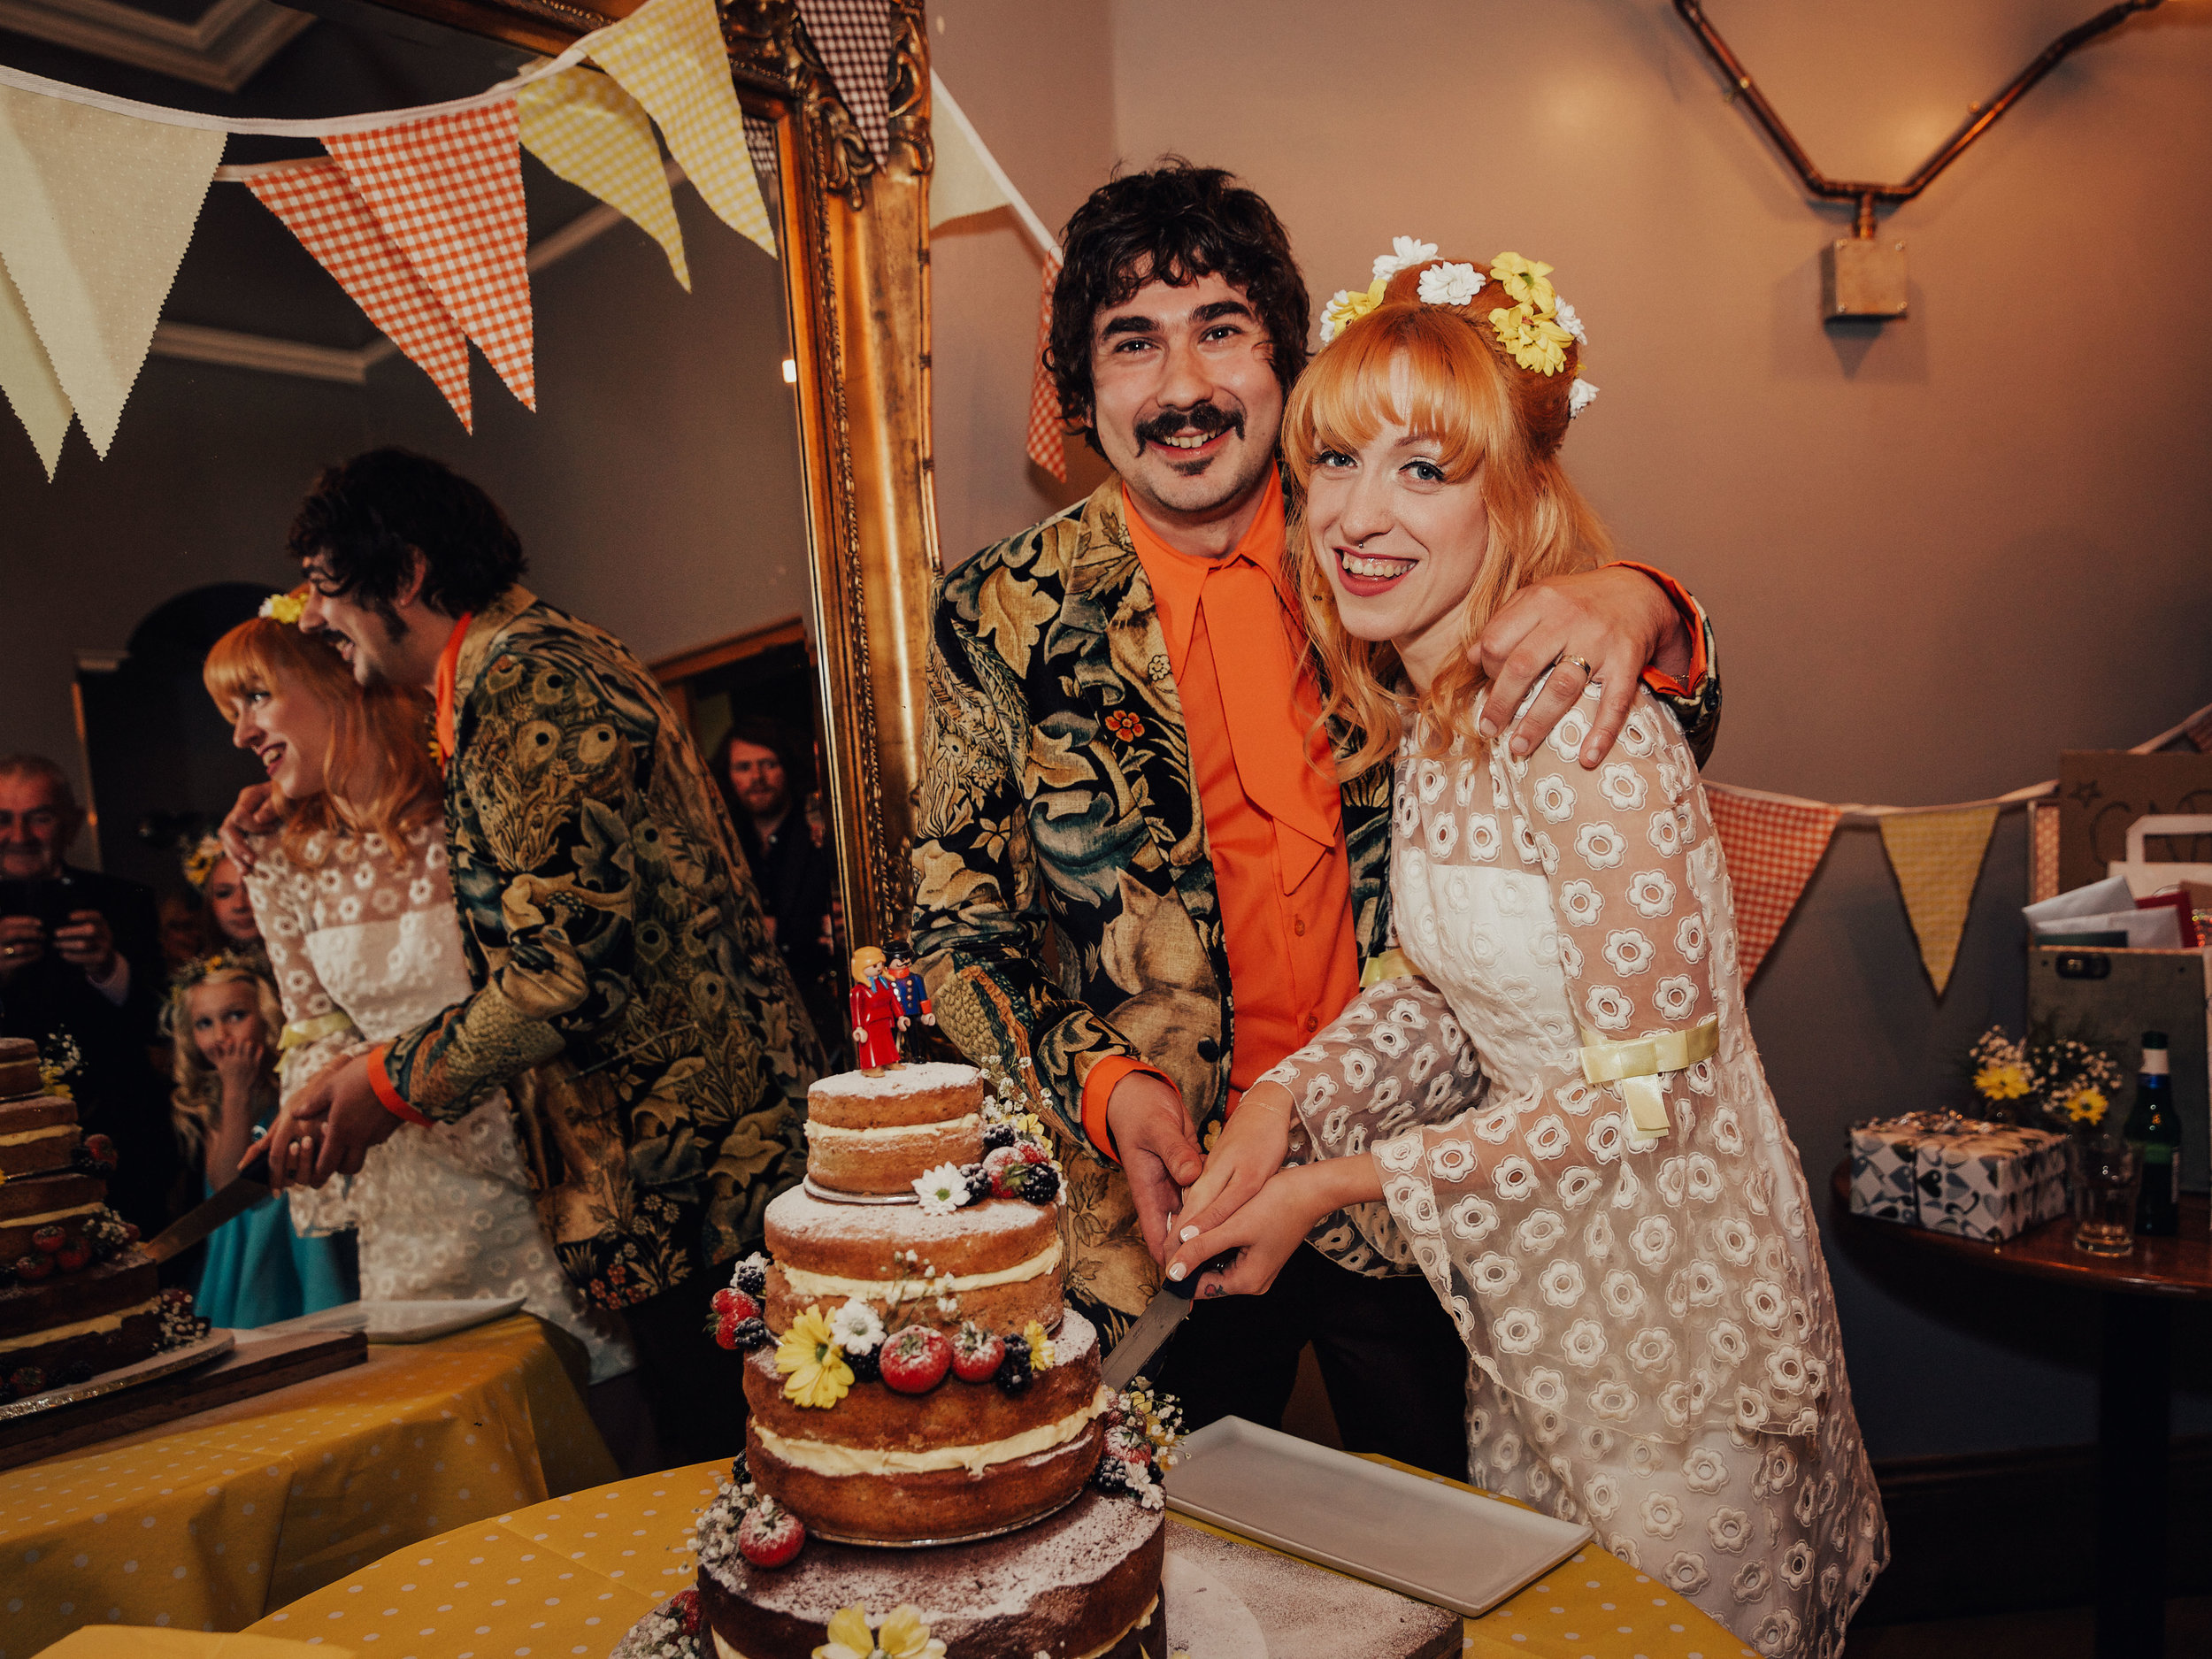 ALTERNATIVE_WEDDING_PHOTOGRAPHY_LEEDS_UK_PJ_PHILLIPS_PHOTOGRAPHY_152.jpg